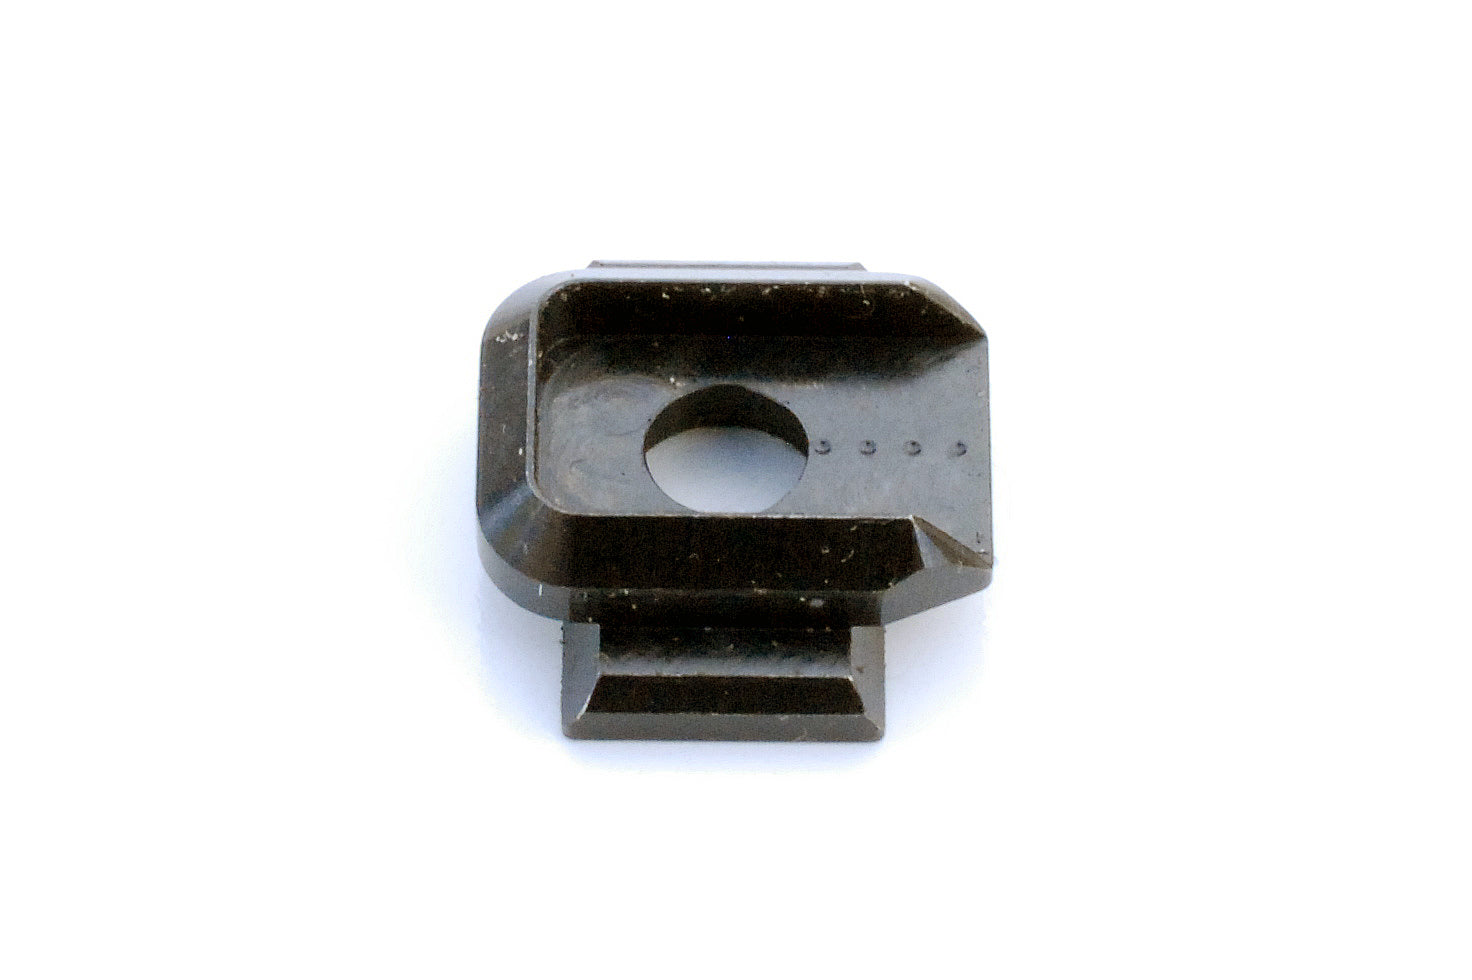 FRONT SIGHT BASE FOR ATPS: S&W M&P